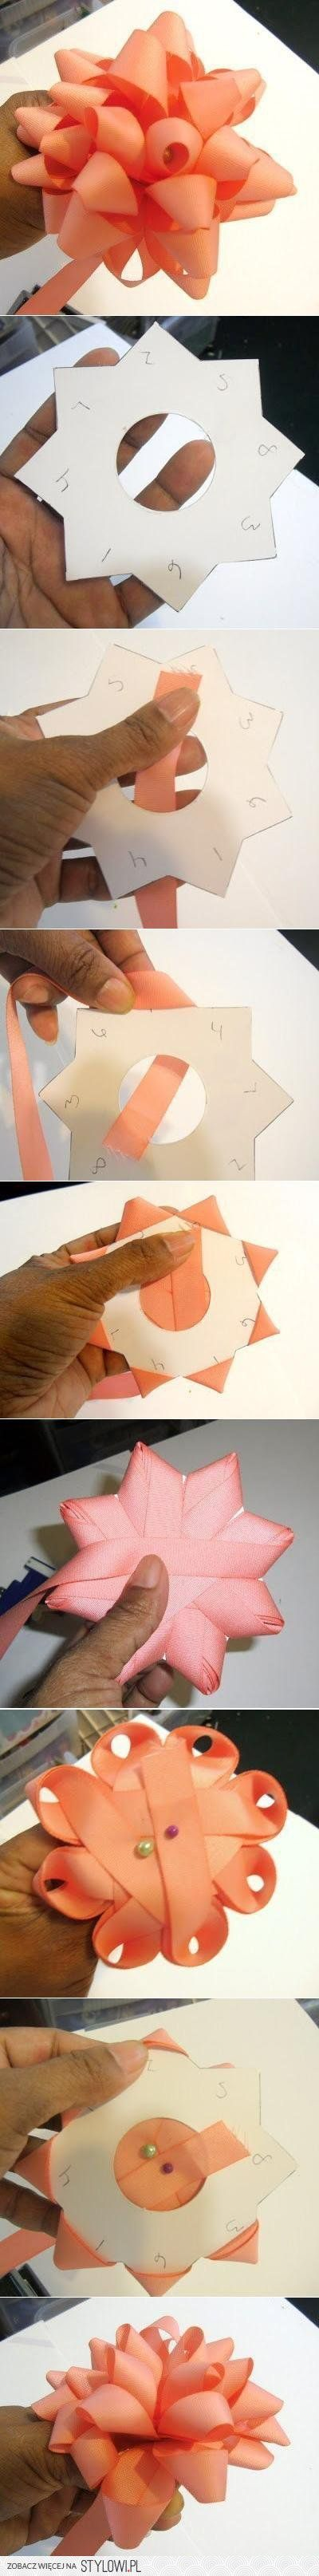 DIY Bow of Ribbon DIY Projects | UsefulDIY.com na Stylowi.pl